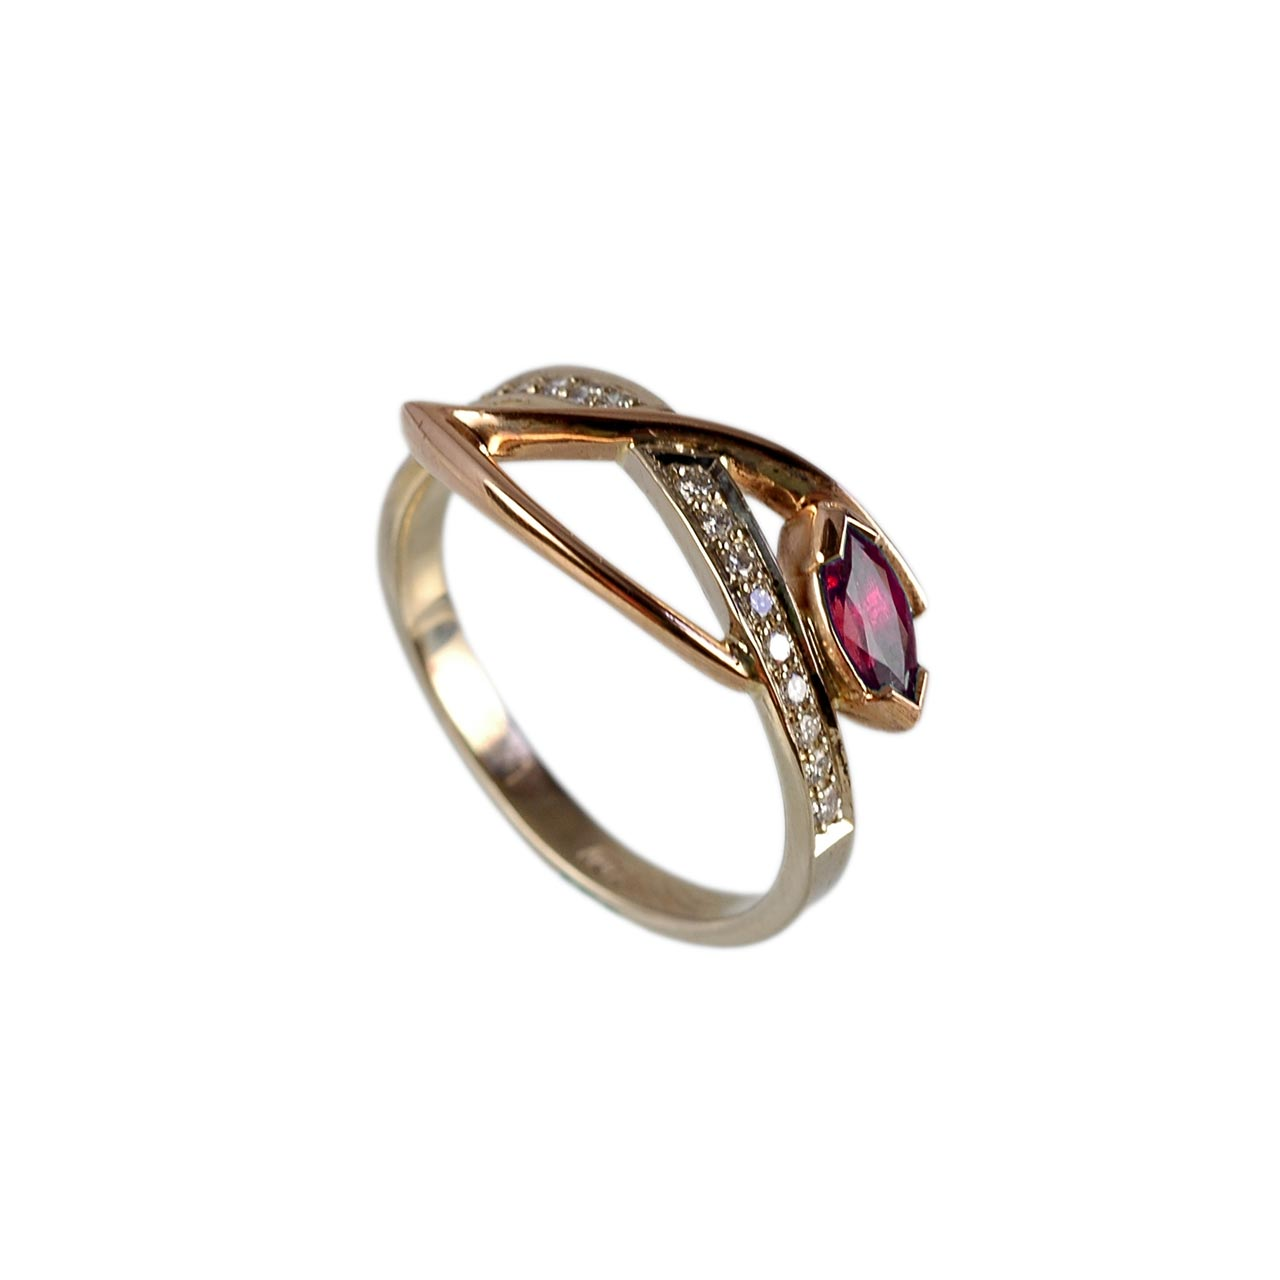 Burma ruby gold ring 2